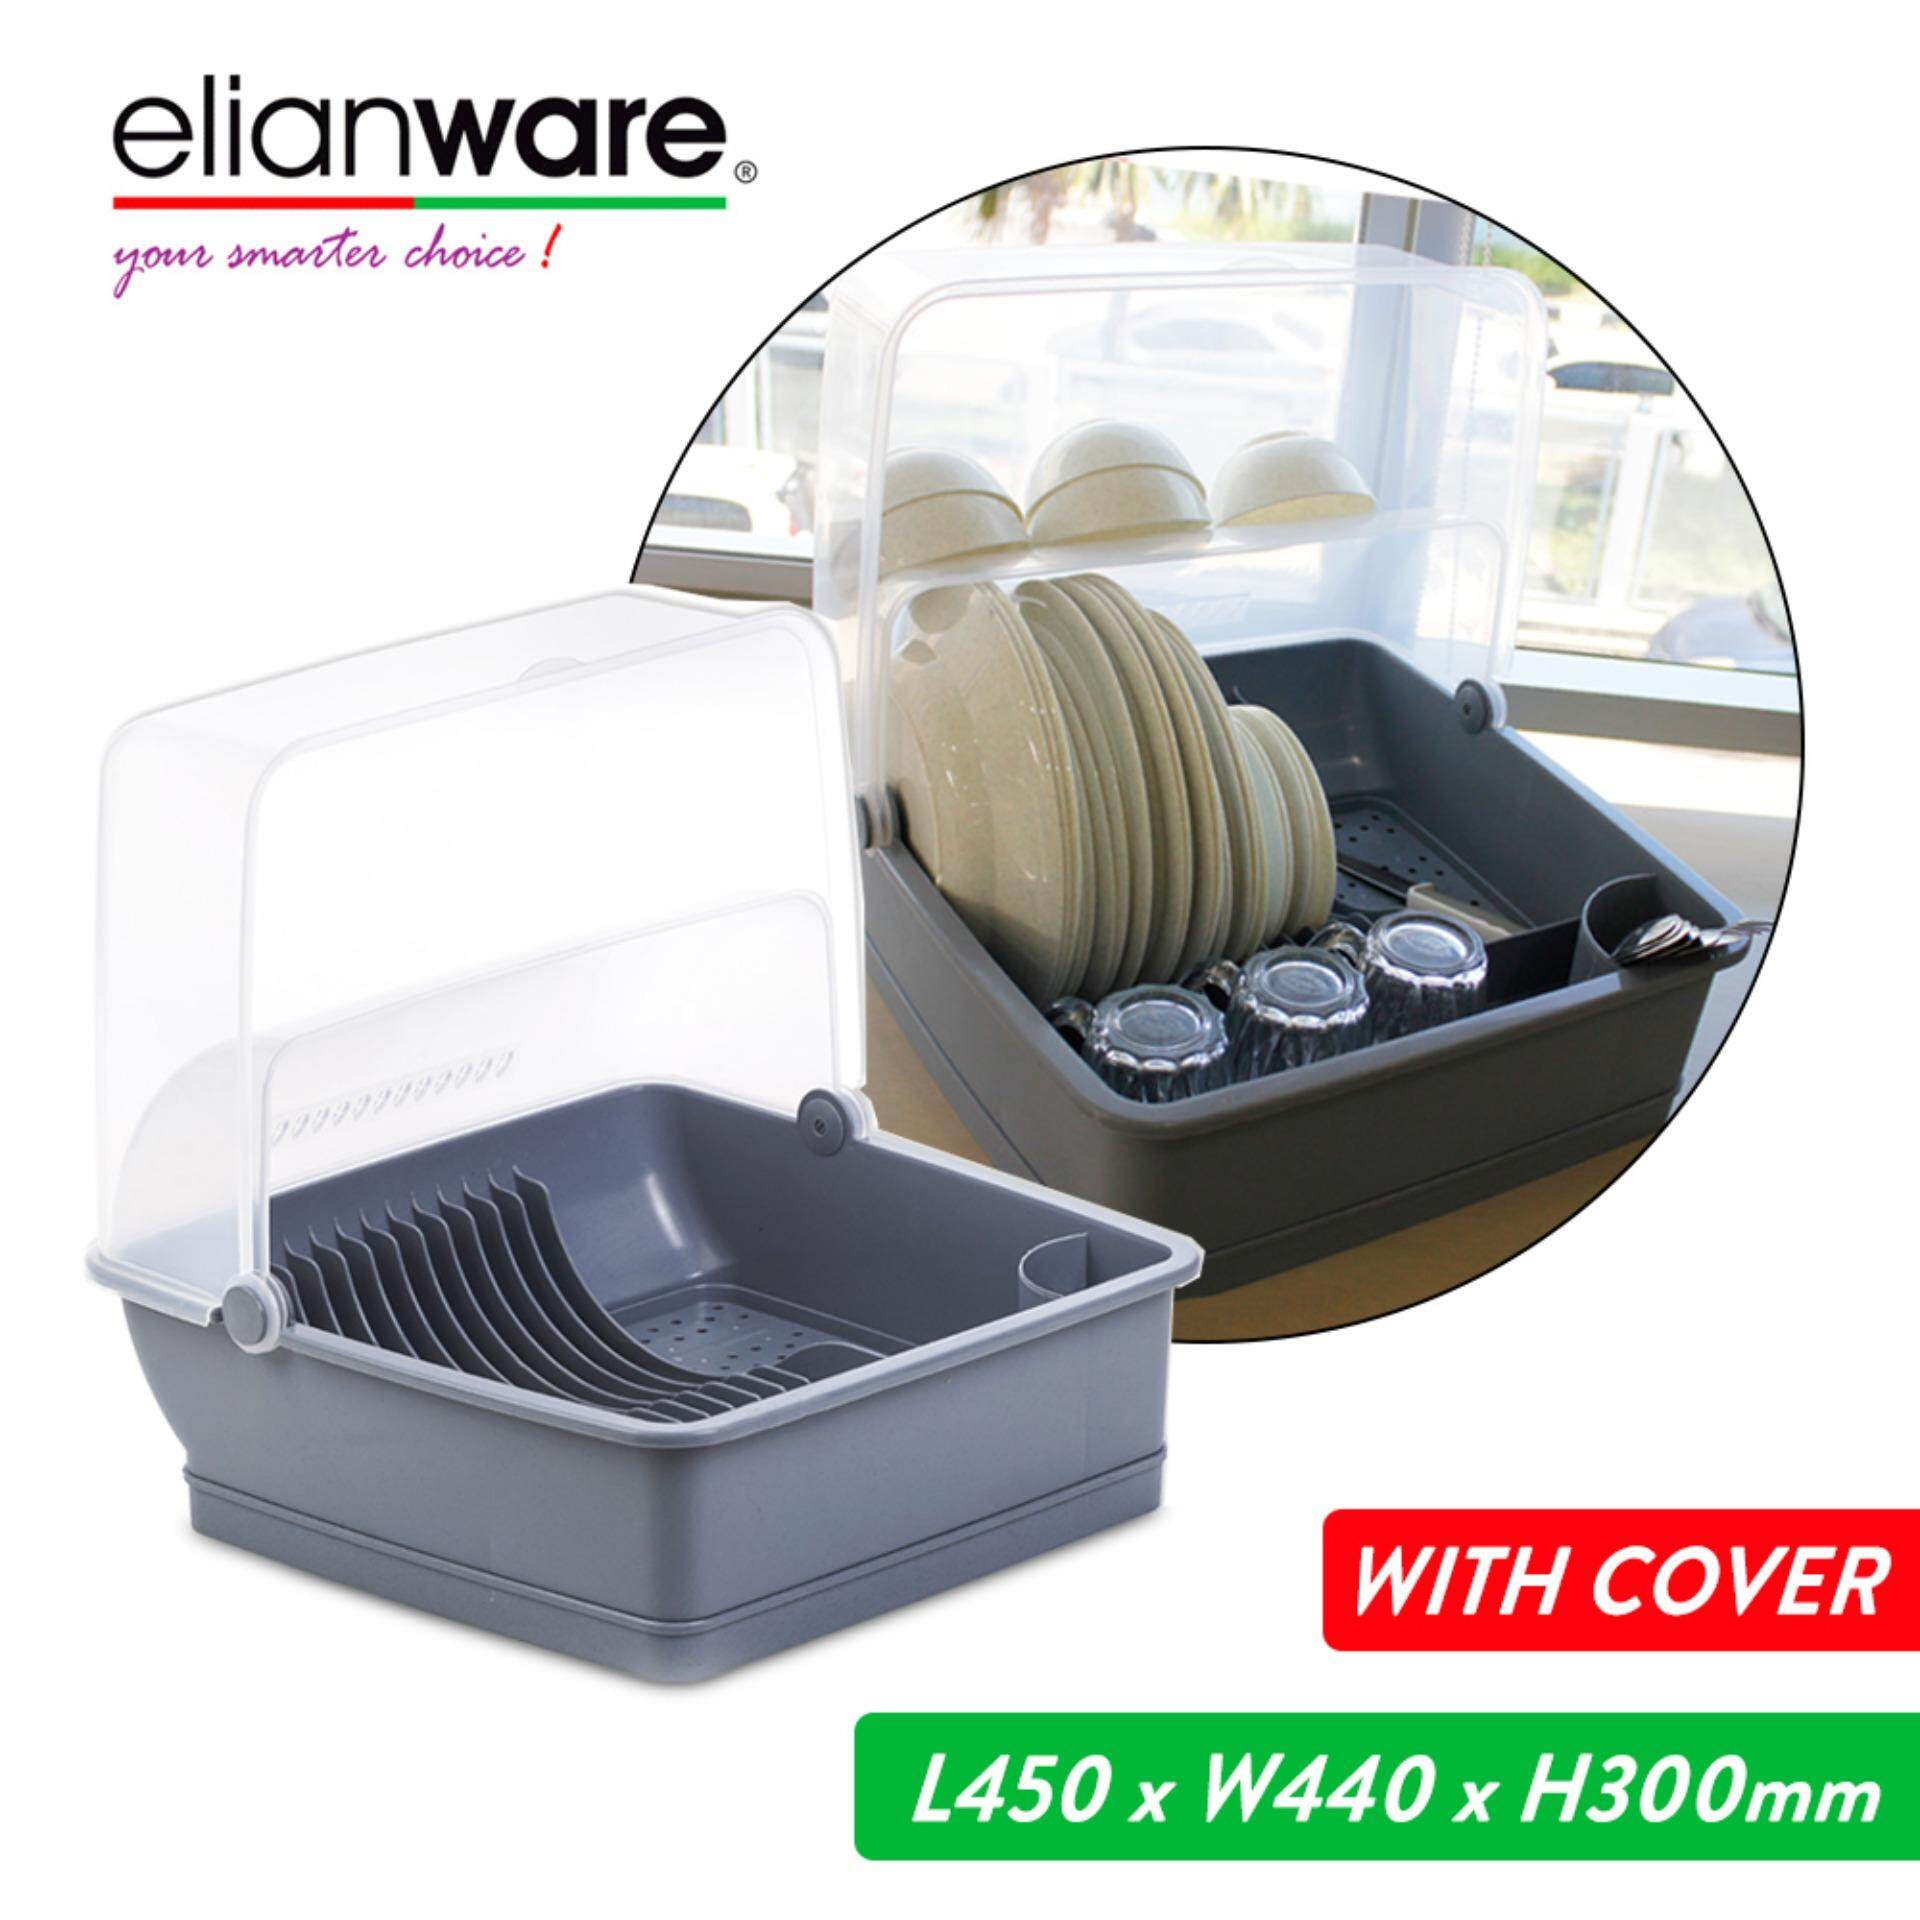 Elianware Extra Large Dust Free Home Dish Rack Disk Drainer with Cover Rak Pinggan